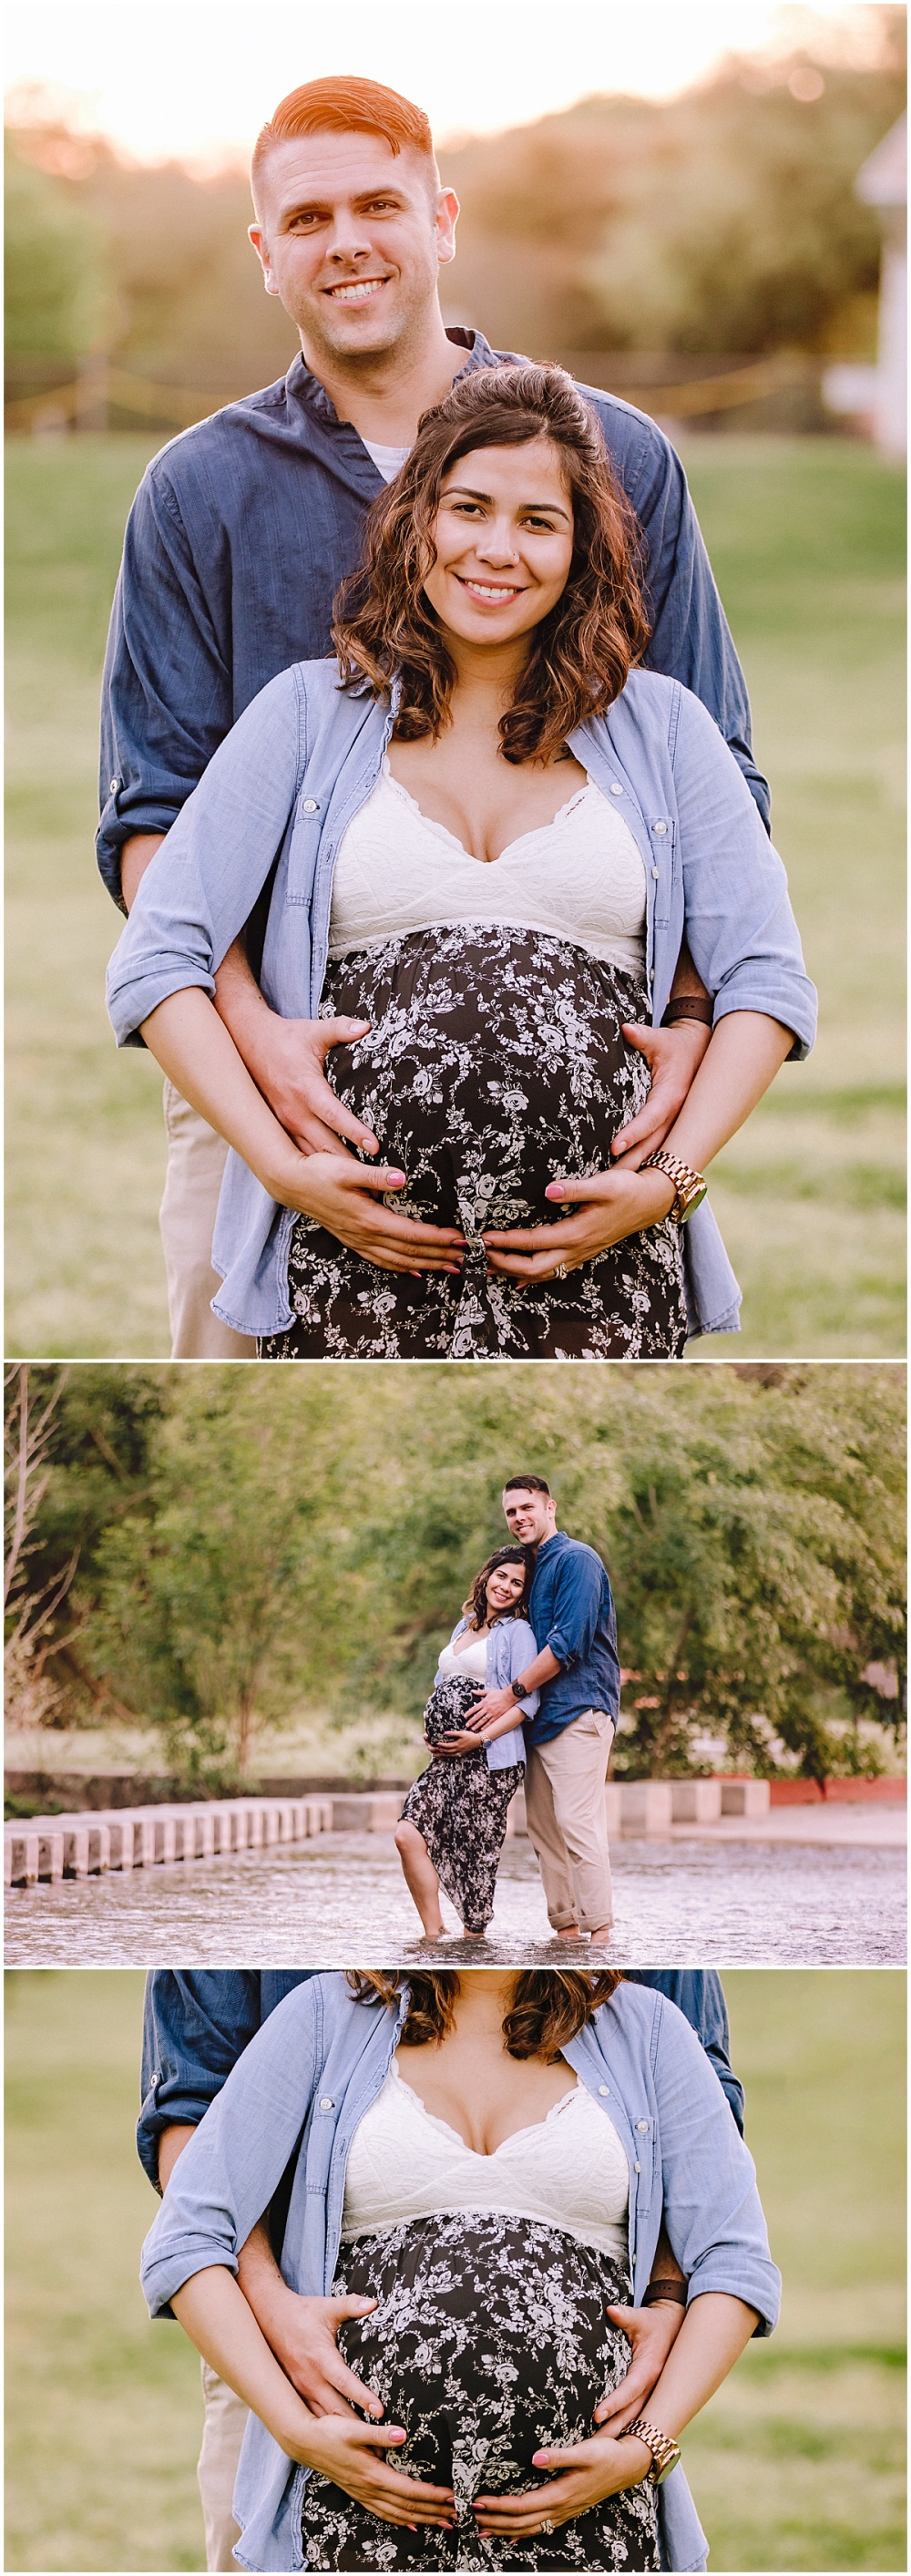 Maternity-Photo-Session-Brakenridge-Park-San-Antonio-Texas-Carly-Barton-Photography_0004.jpg